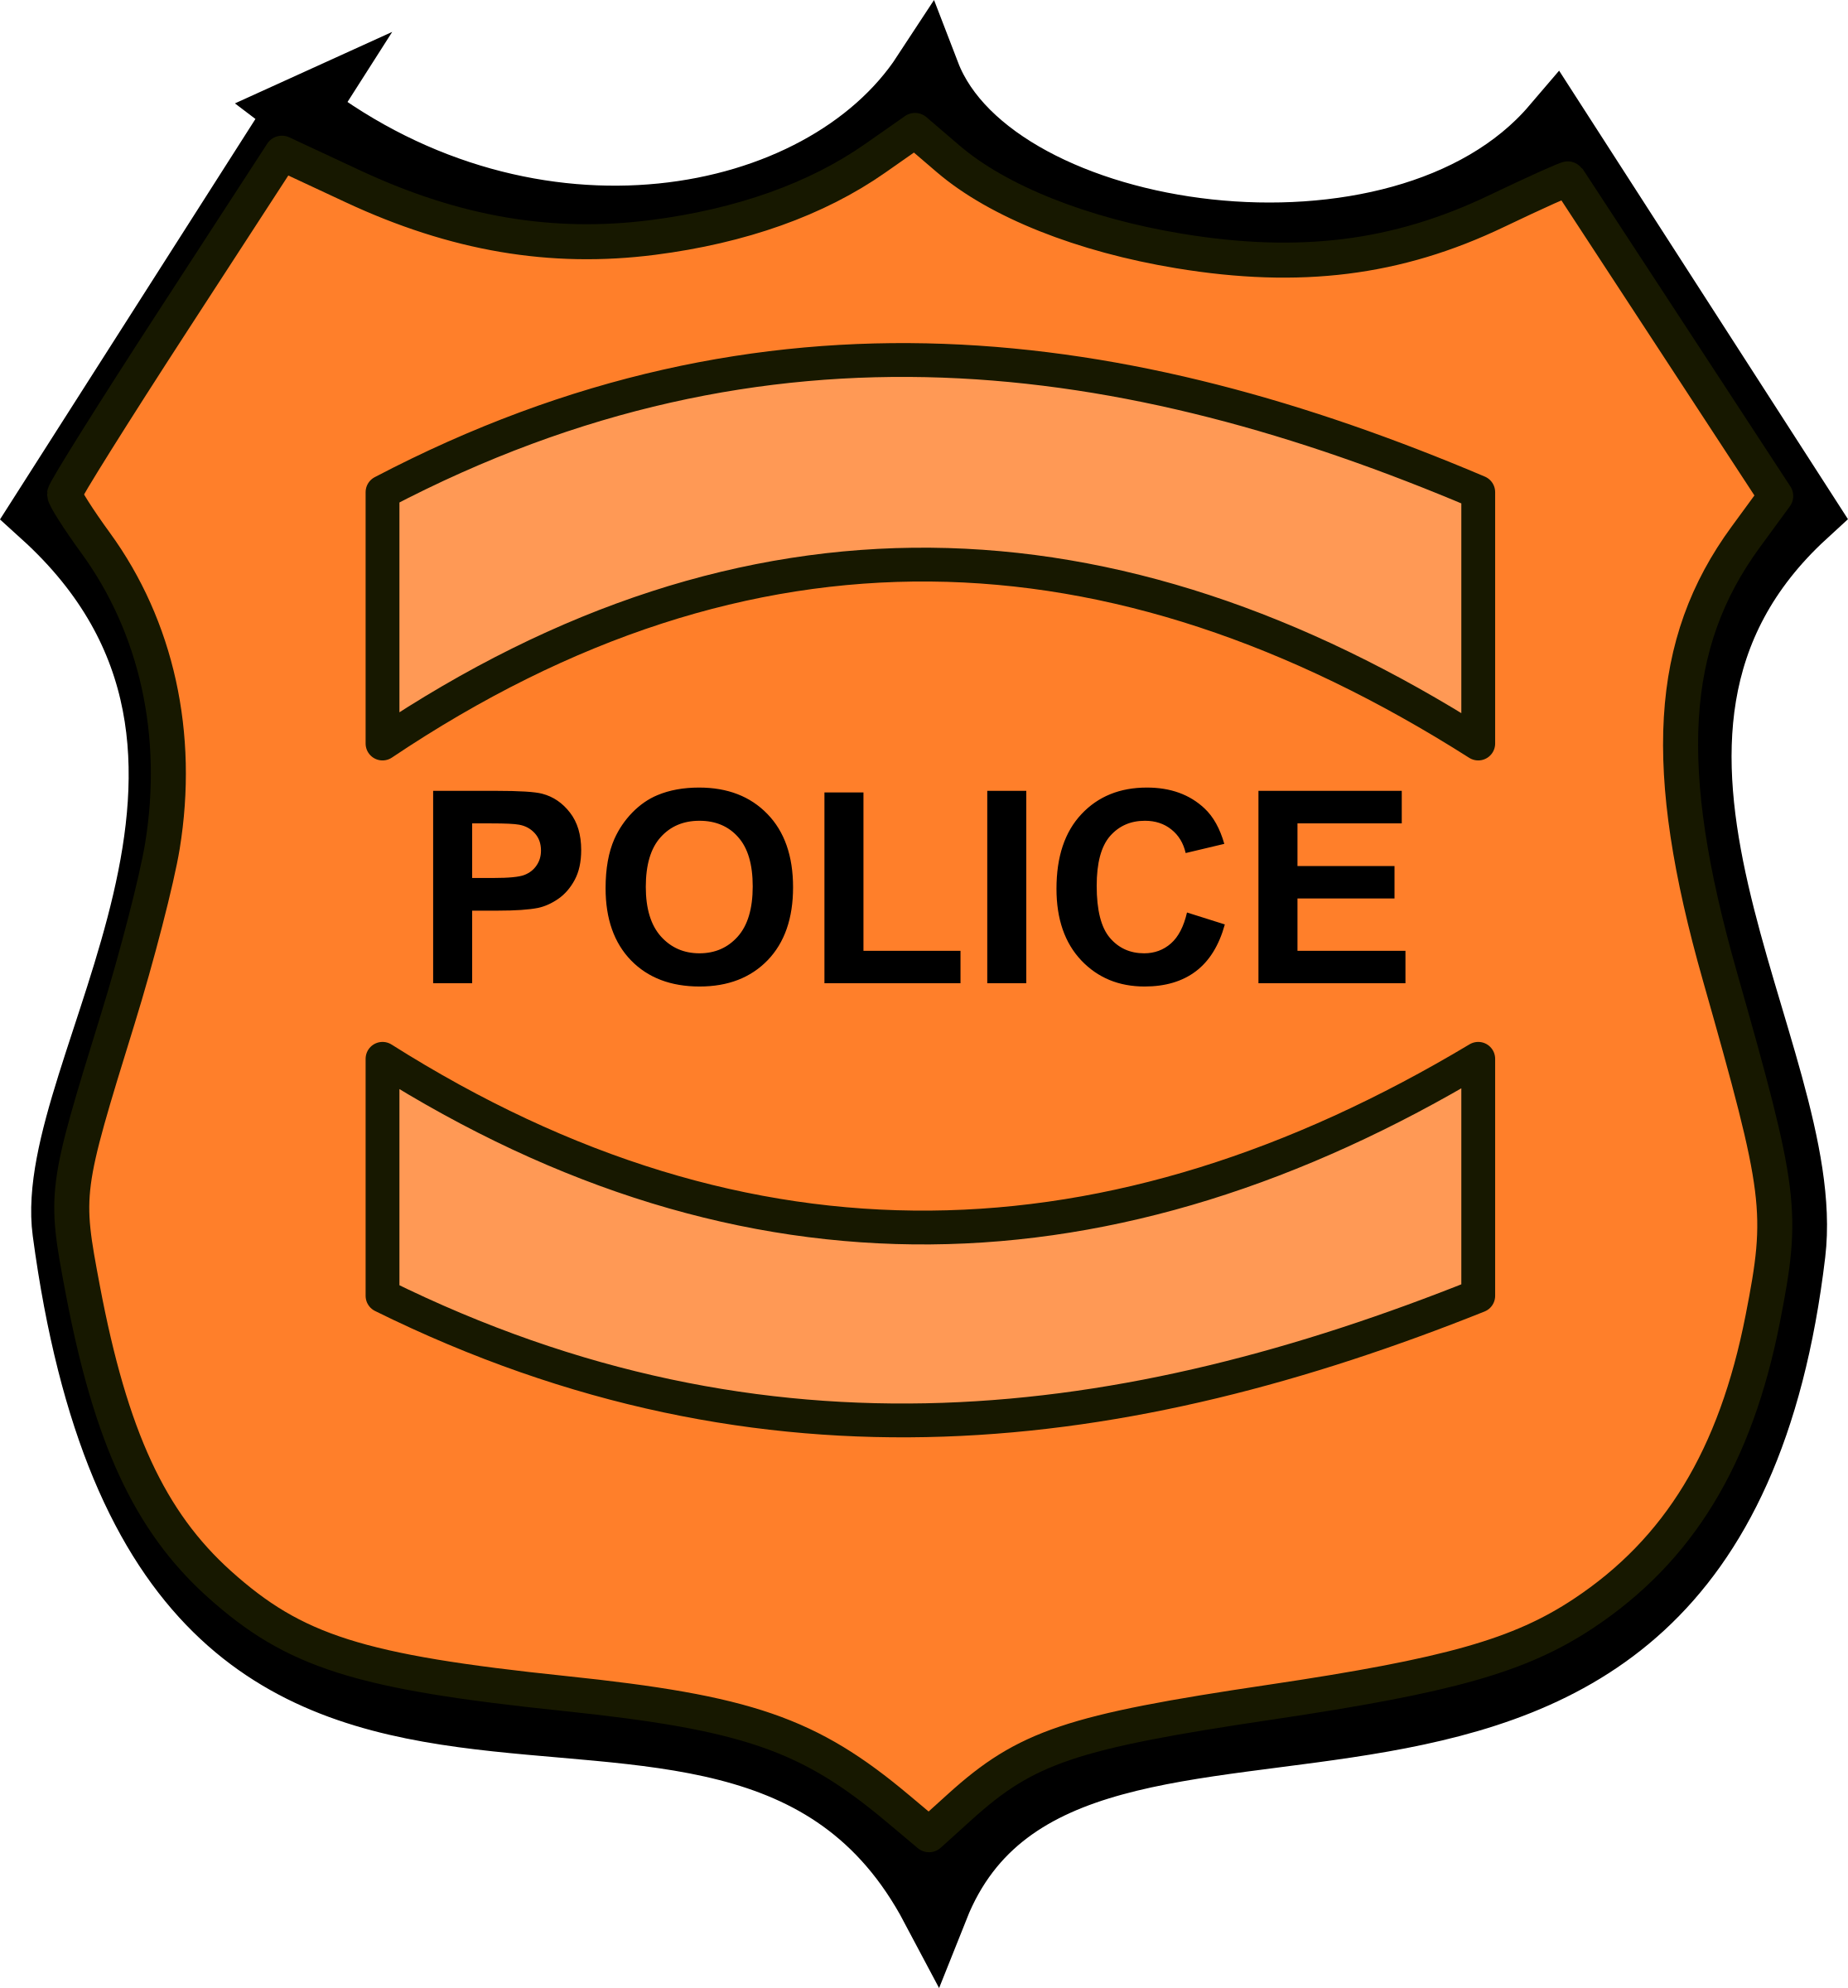 Police Badge by mcendejas